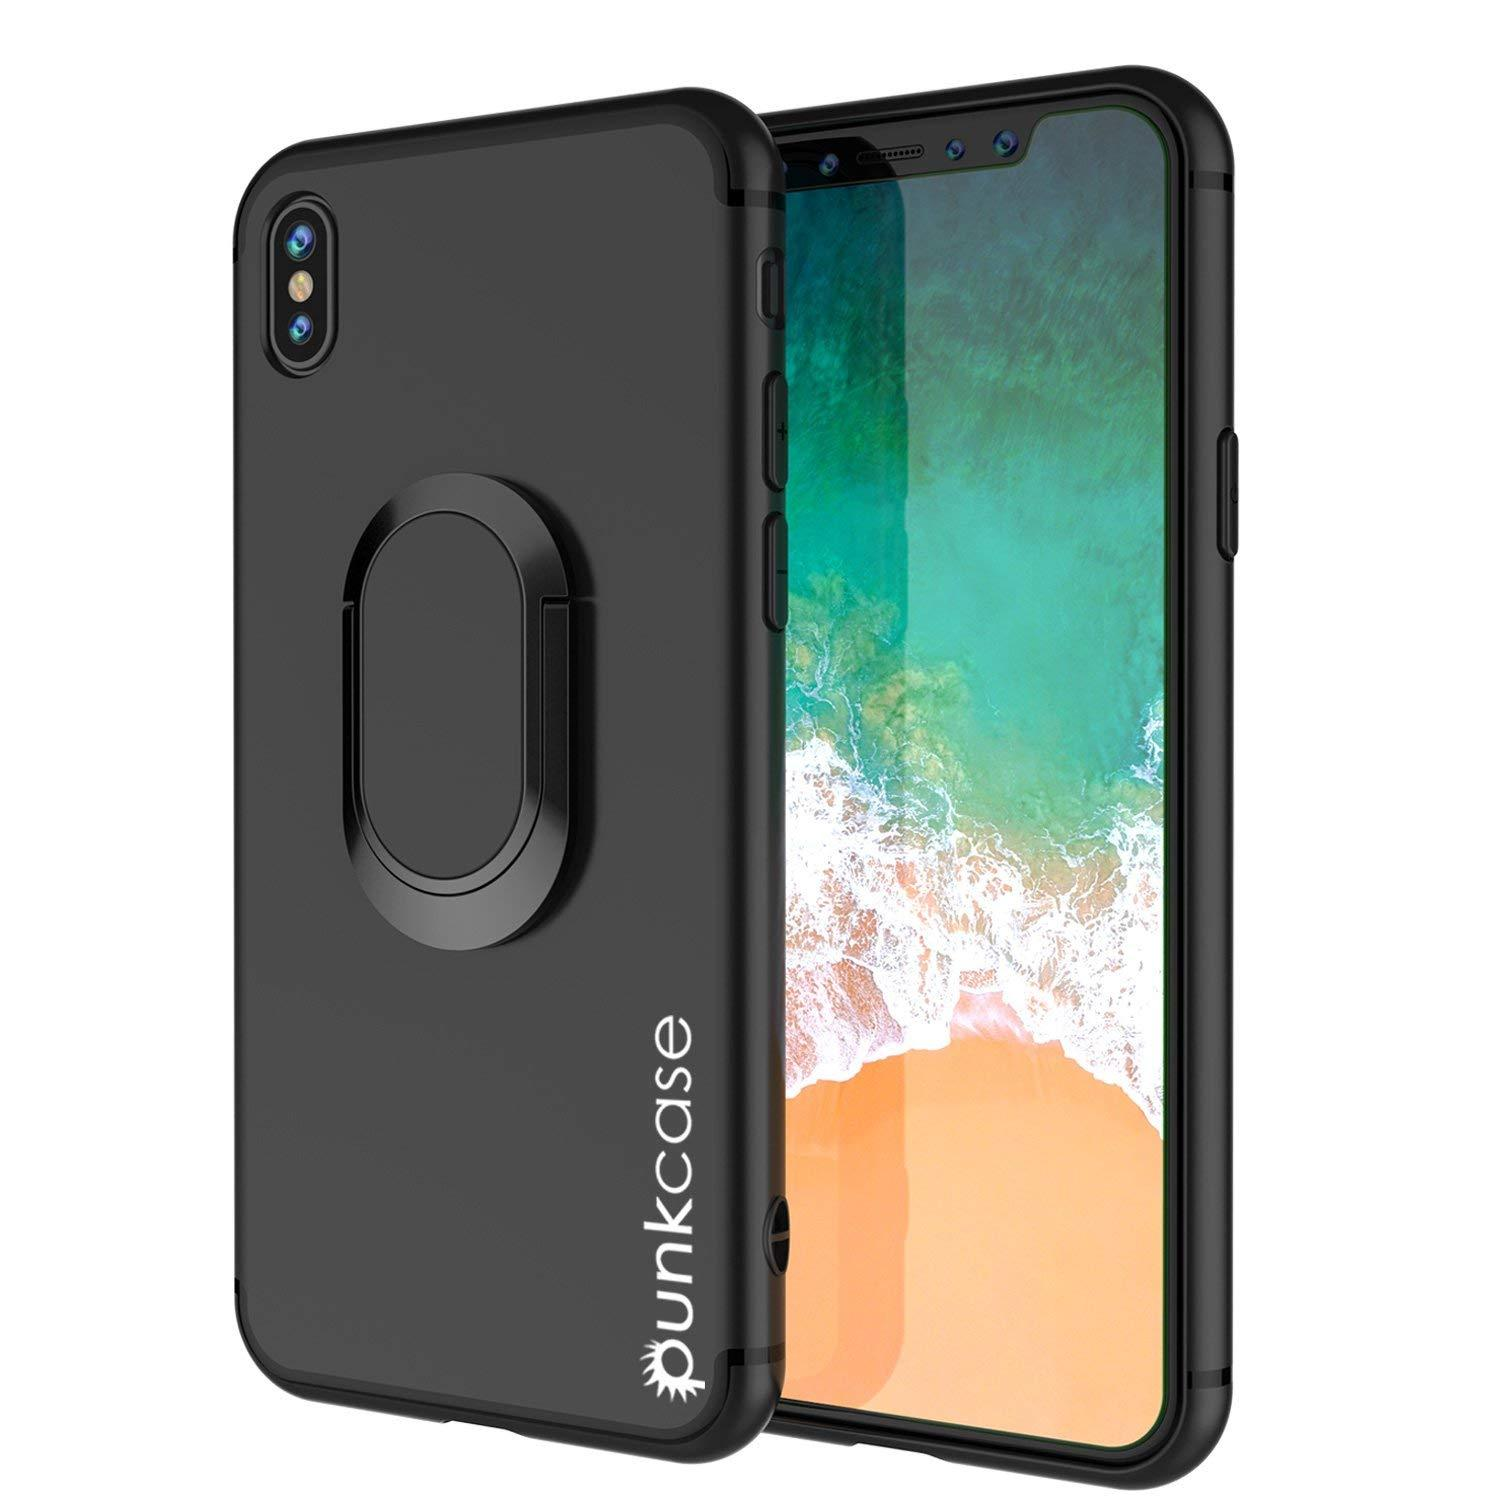 iPhone XR Case, Punkcase Magnetix Protective TPU Cover W/ Kickstand, Tempered Glass Screen Protector [Black]